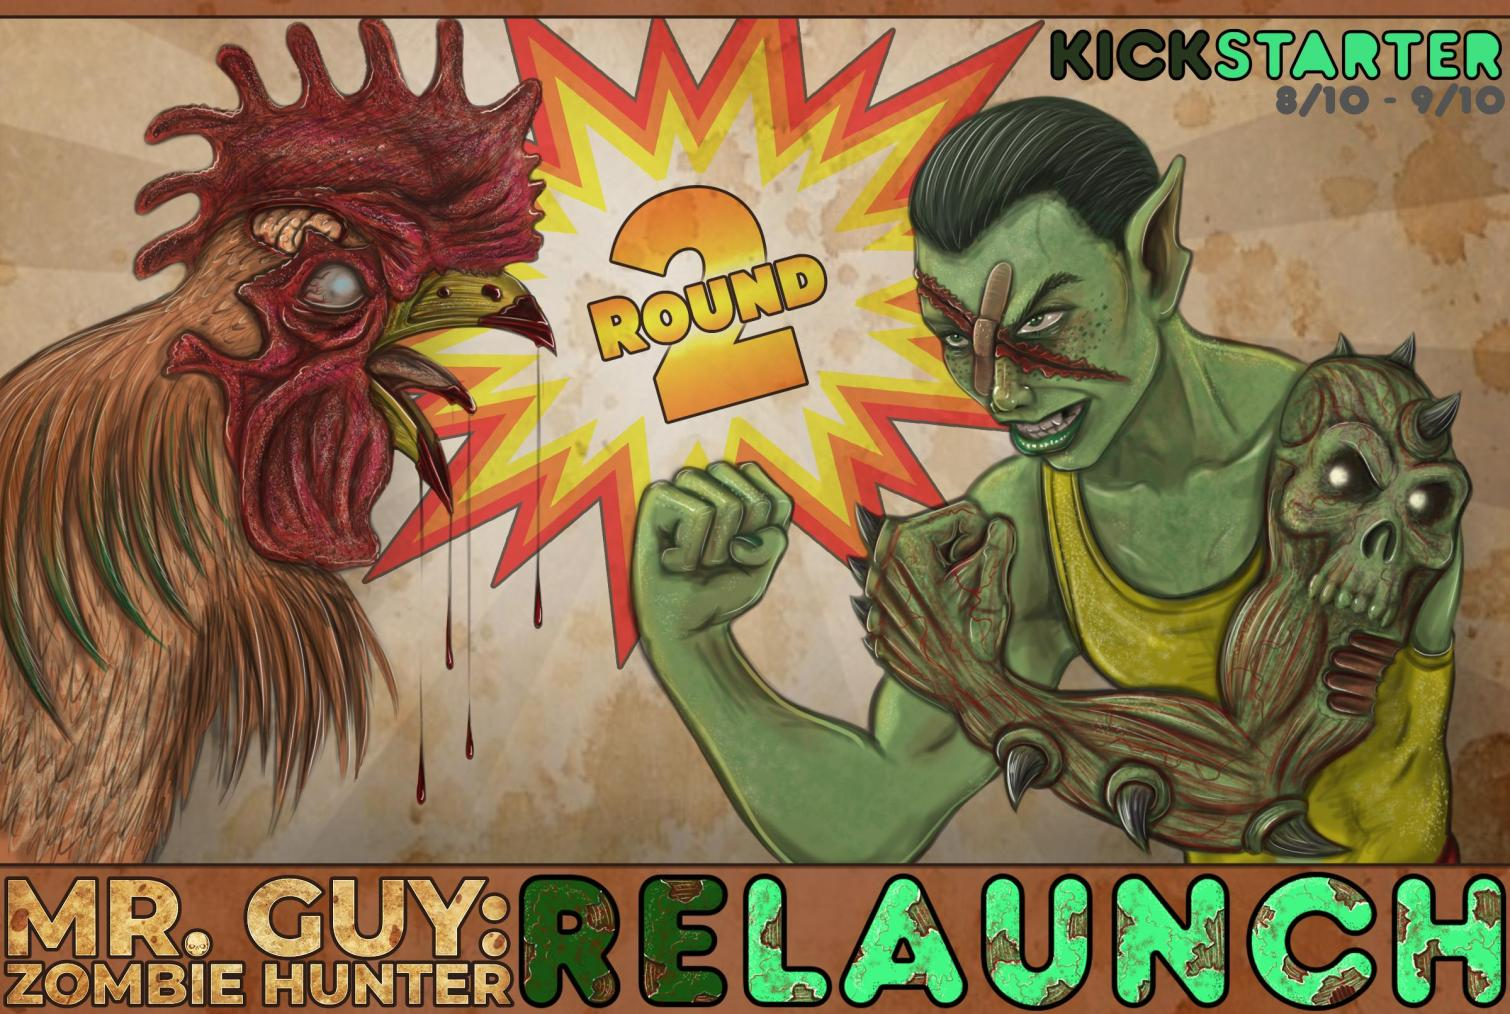 Mr. Guy: Zombie Hunter Round 2 ReLaunch!